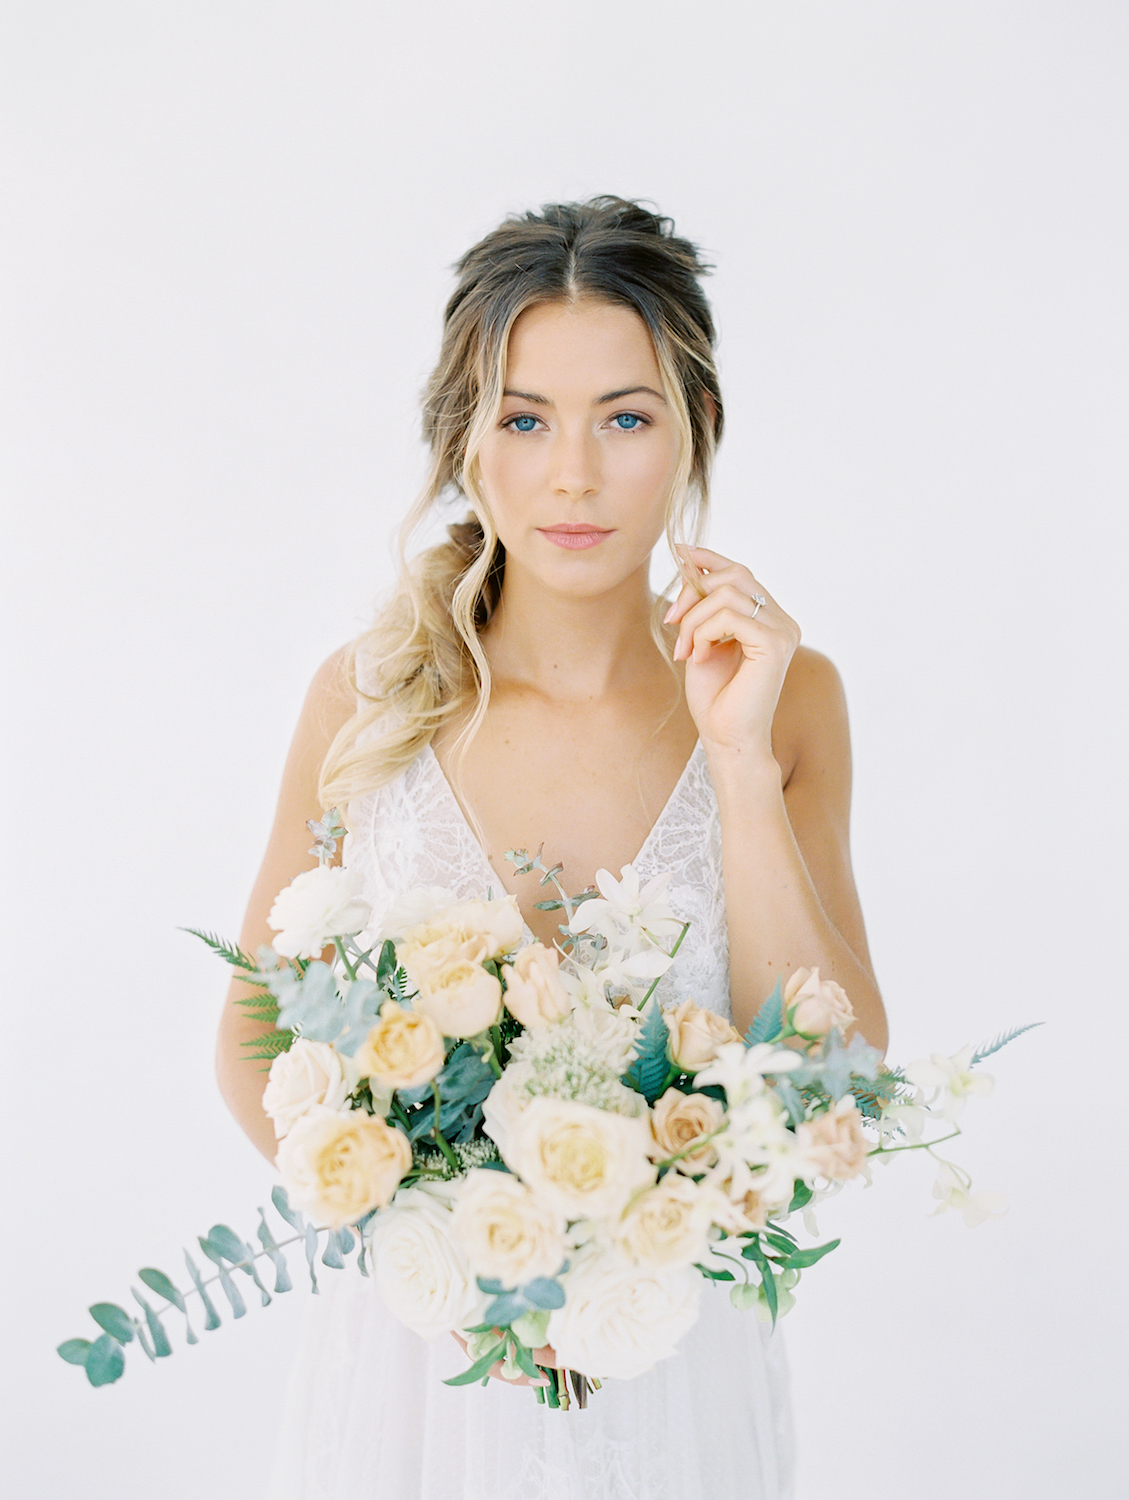 Natural bridal makeup and loose braid | Studio 710 | Compass Floral | Wedding Florist in San Diego and Southern California | Dear Lovers Photography